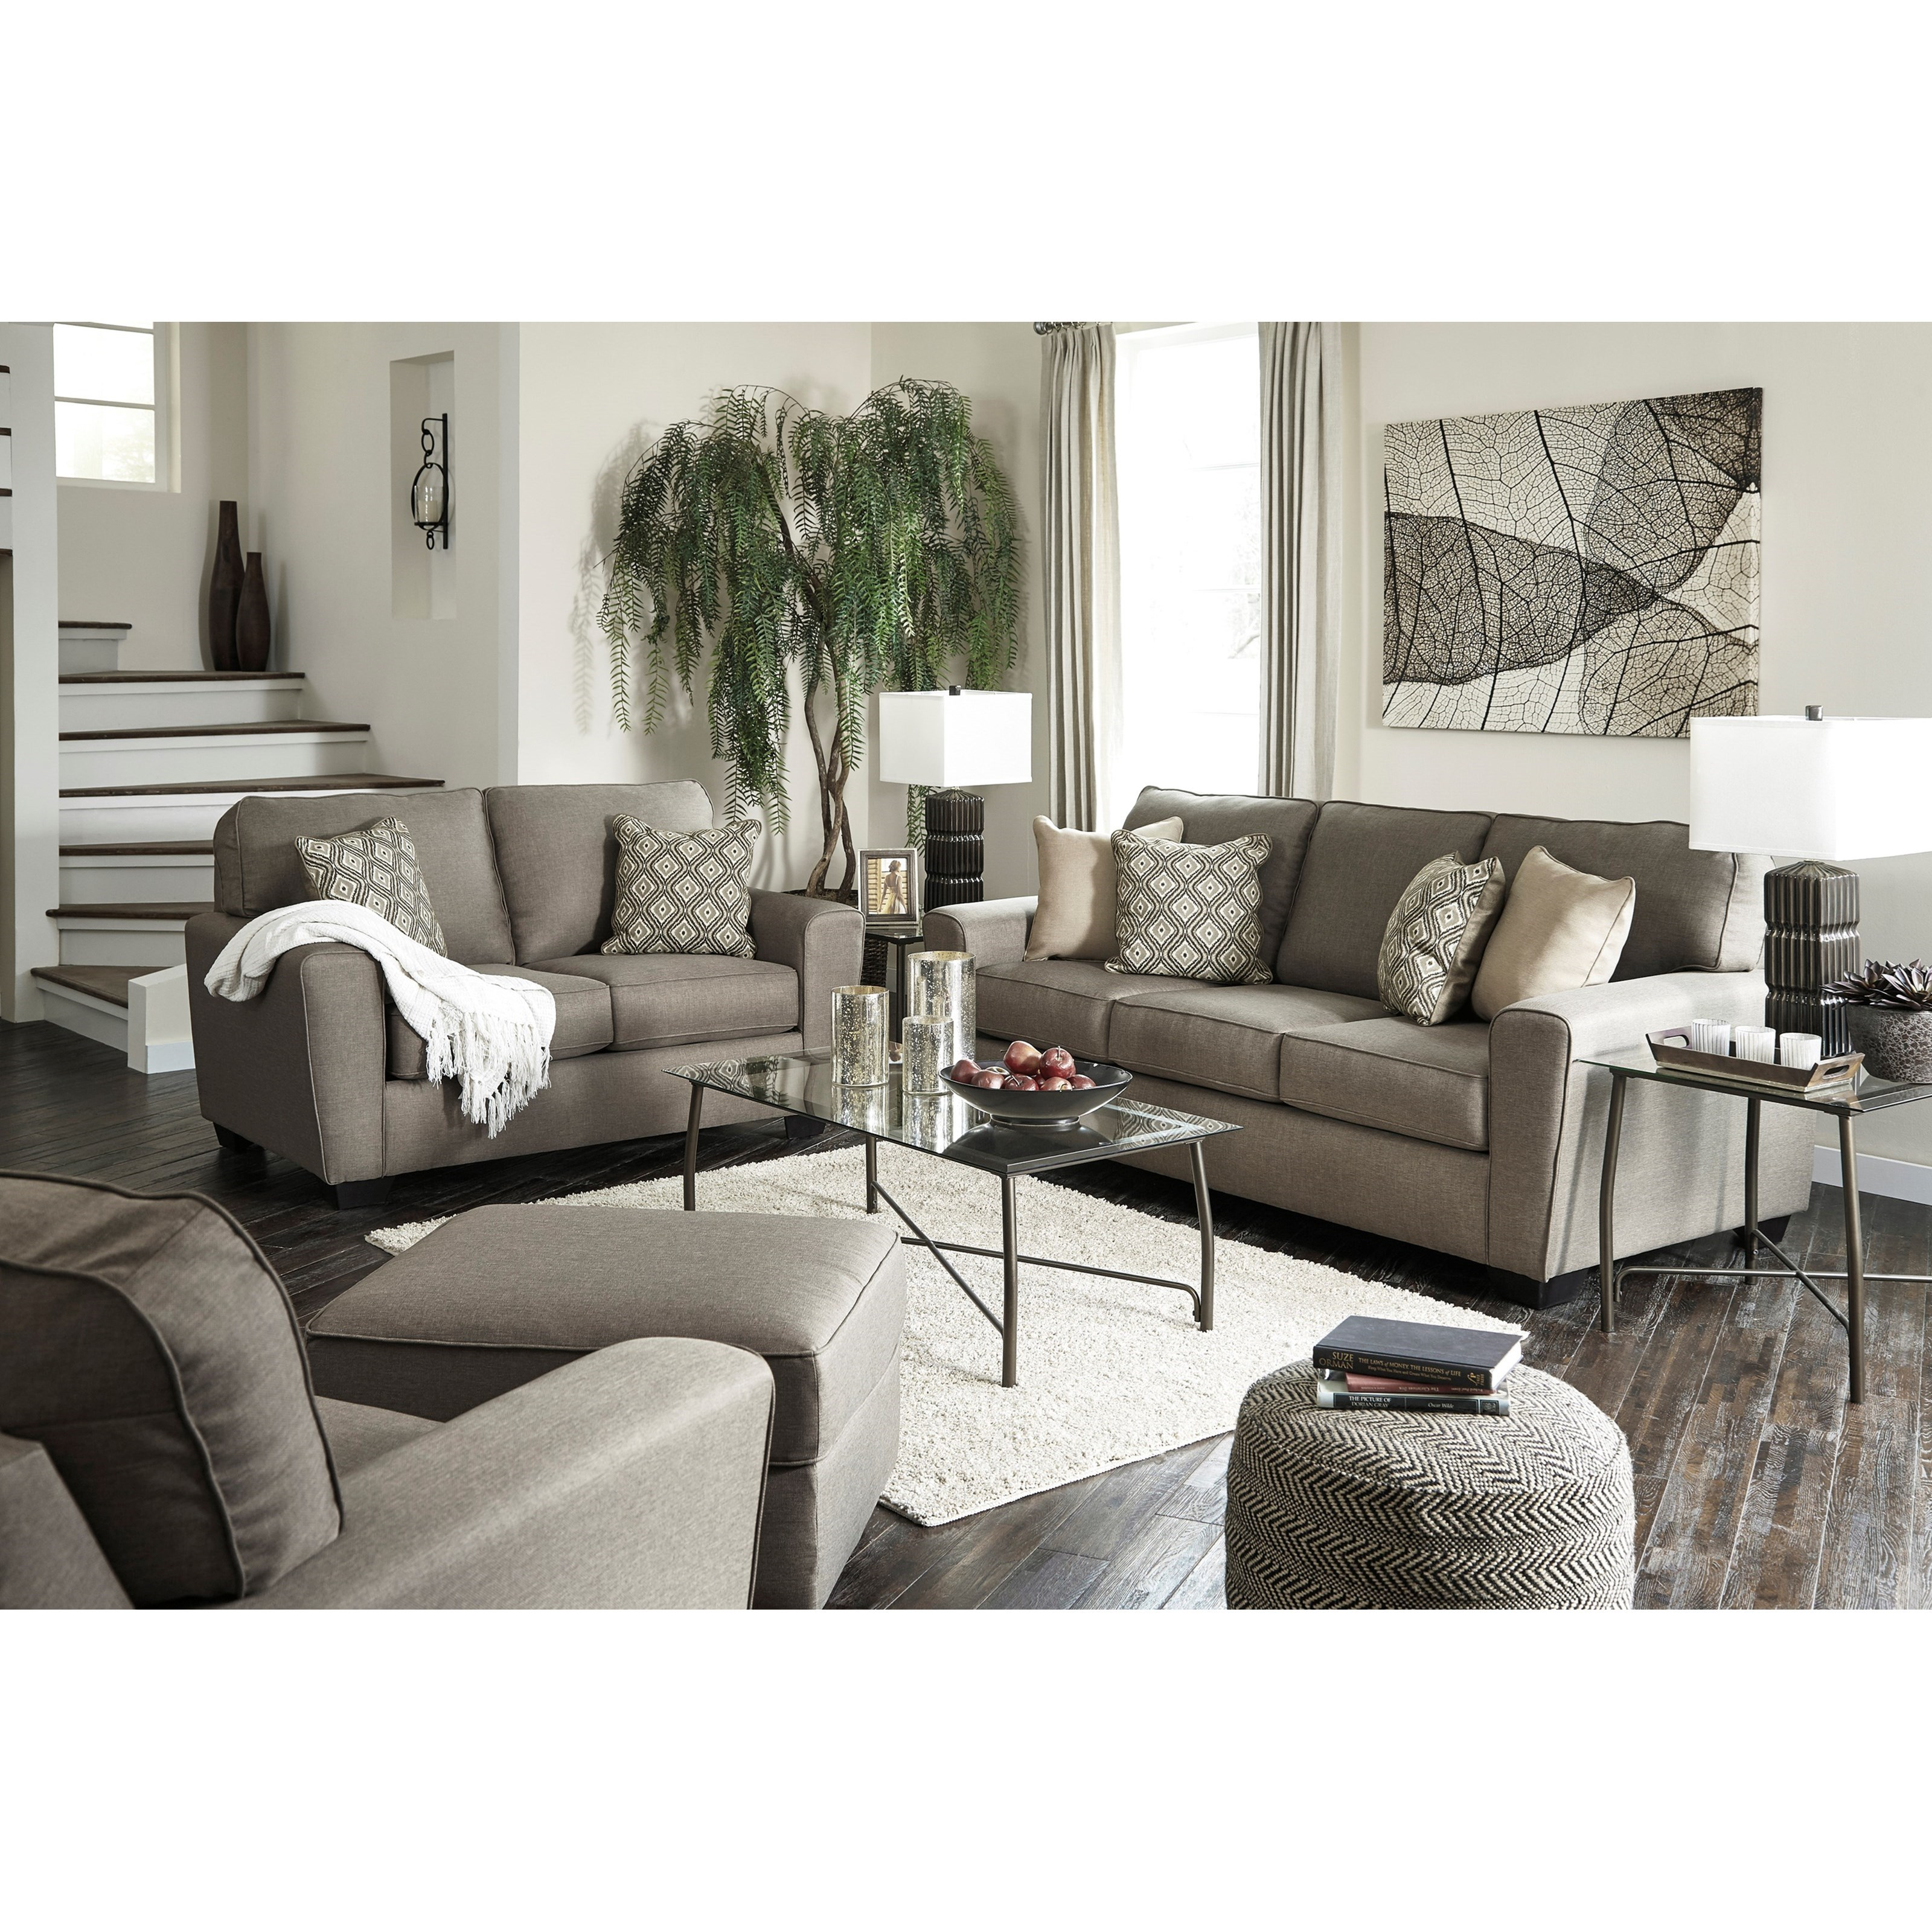 Calicho Stationary Living Room Group by Benchcraft at Miller Waldrop Furniture and Decor